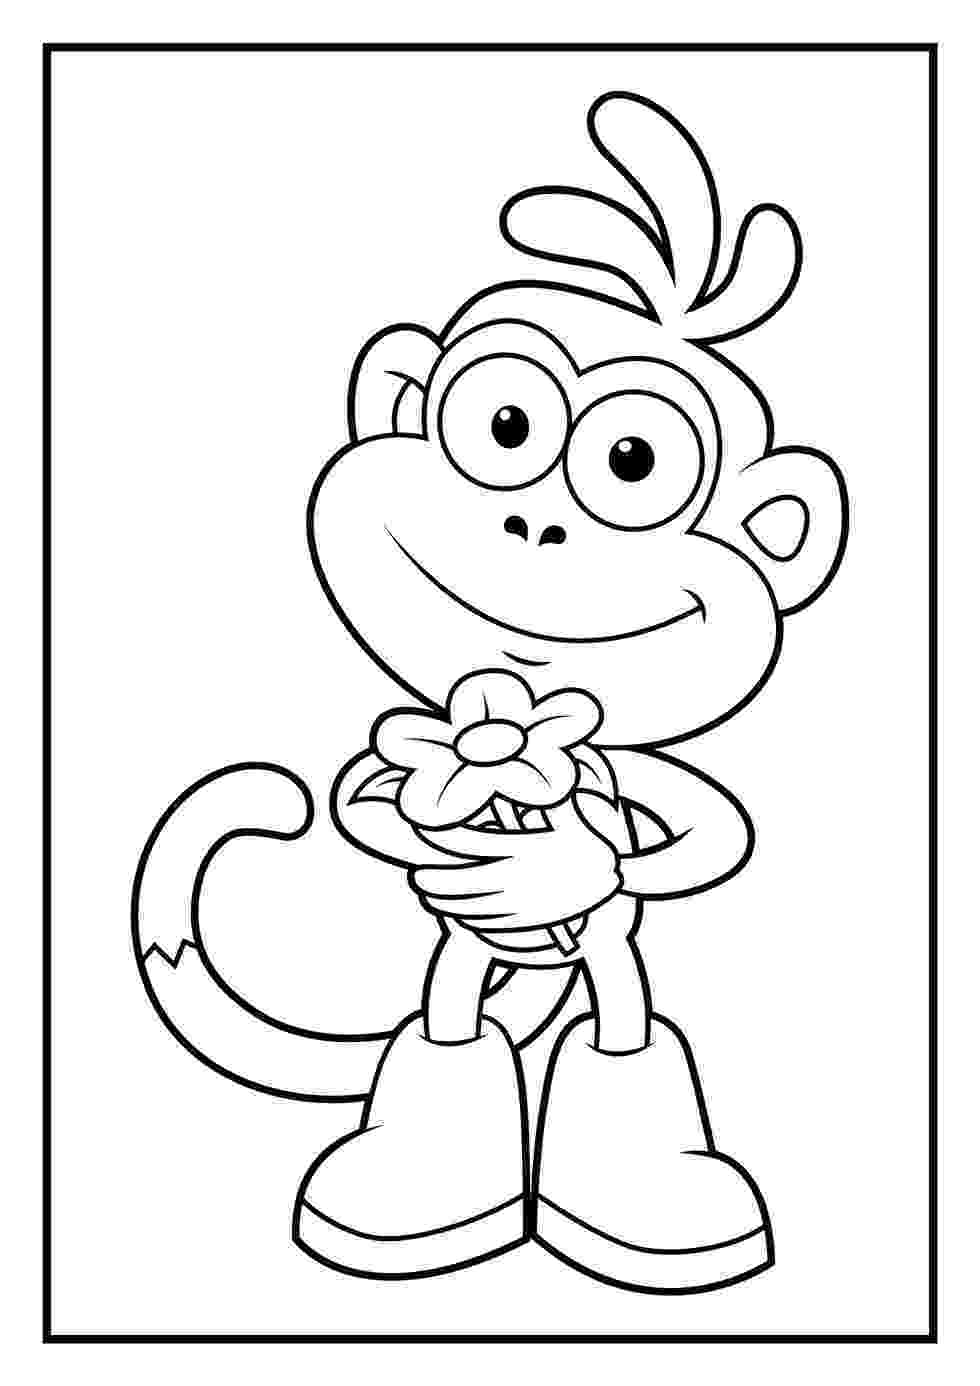 coloring pages boots winter boots coloring page coloring pages photo boots pages boots coloring